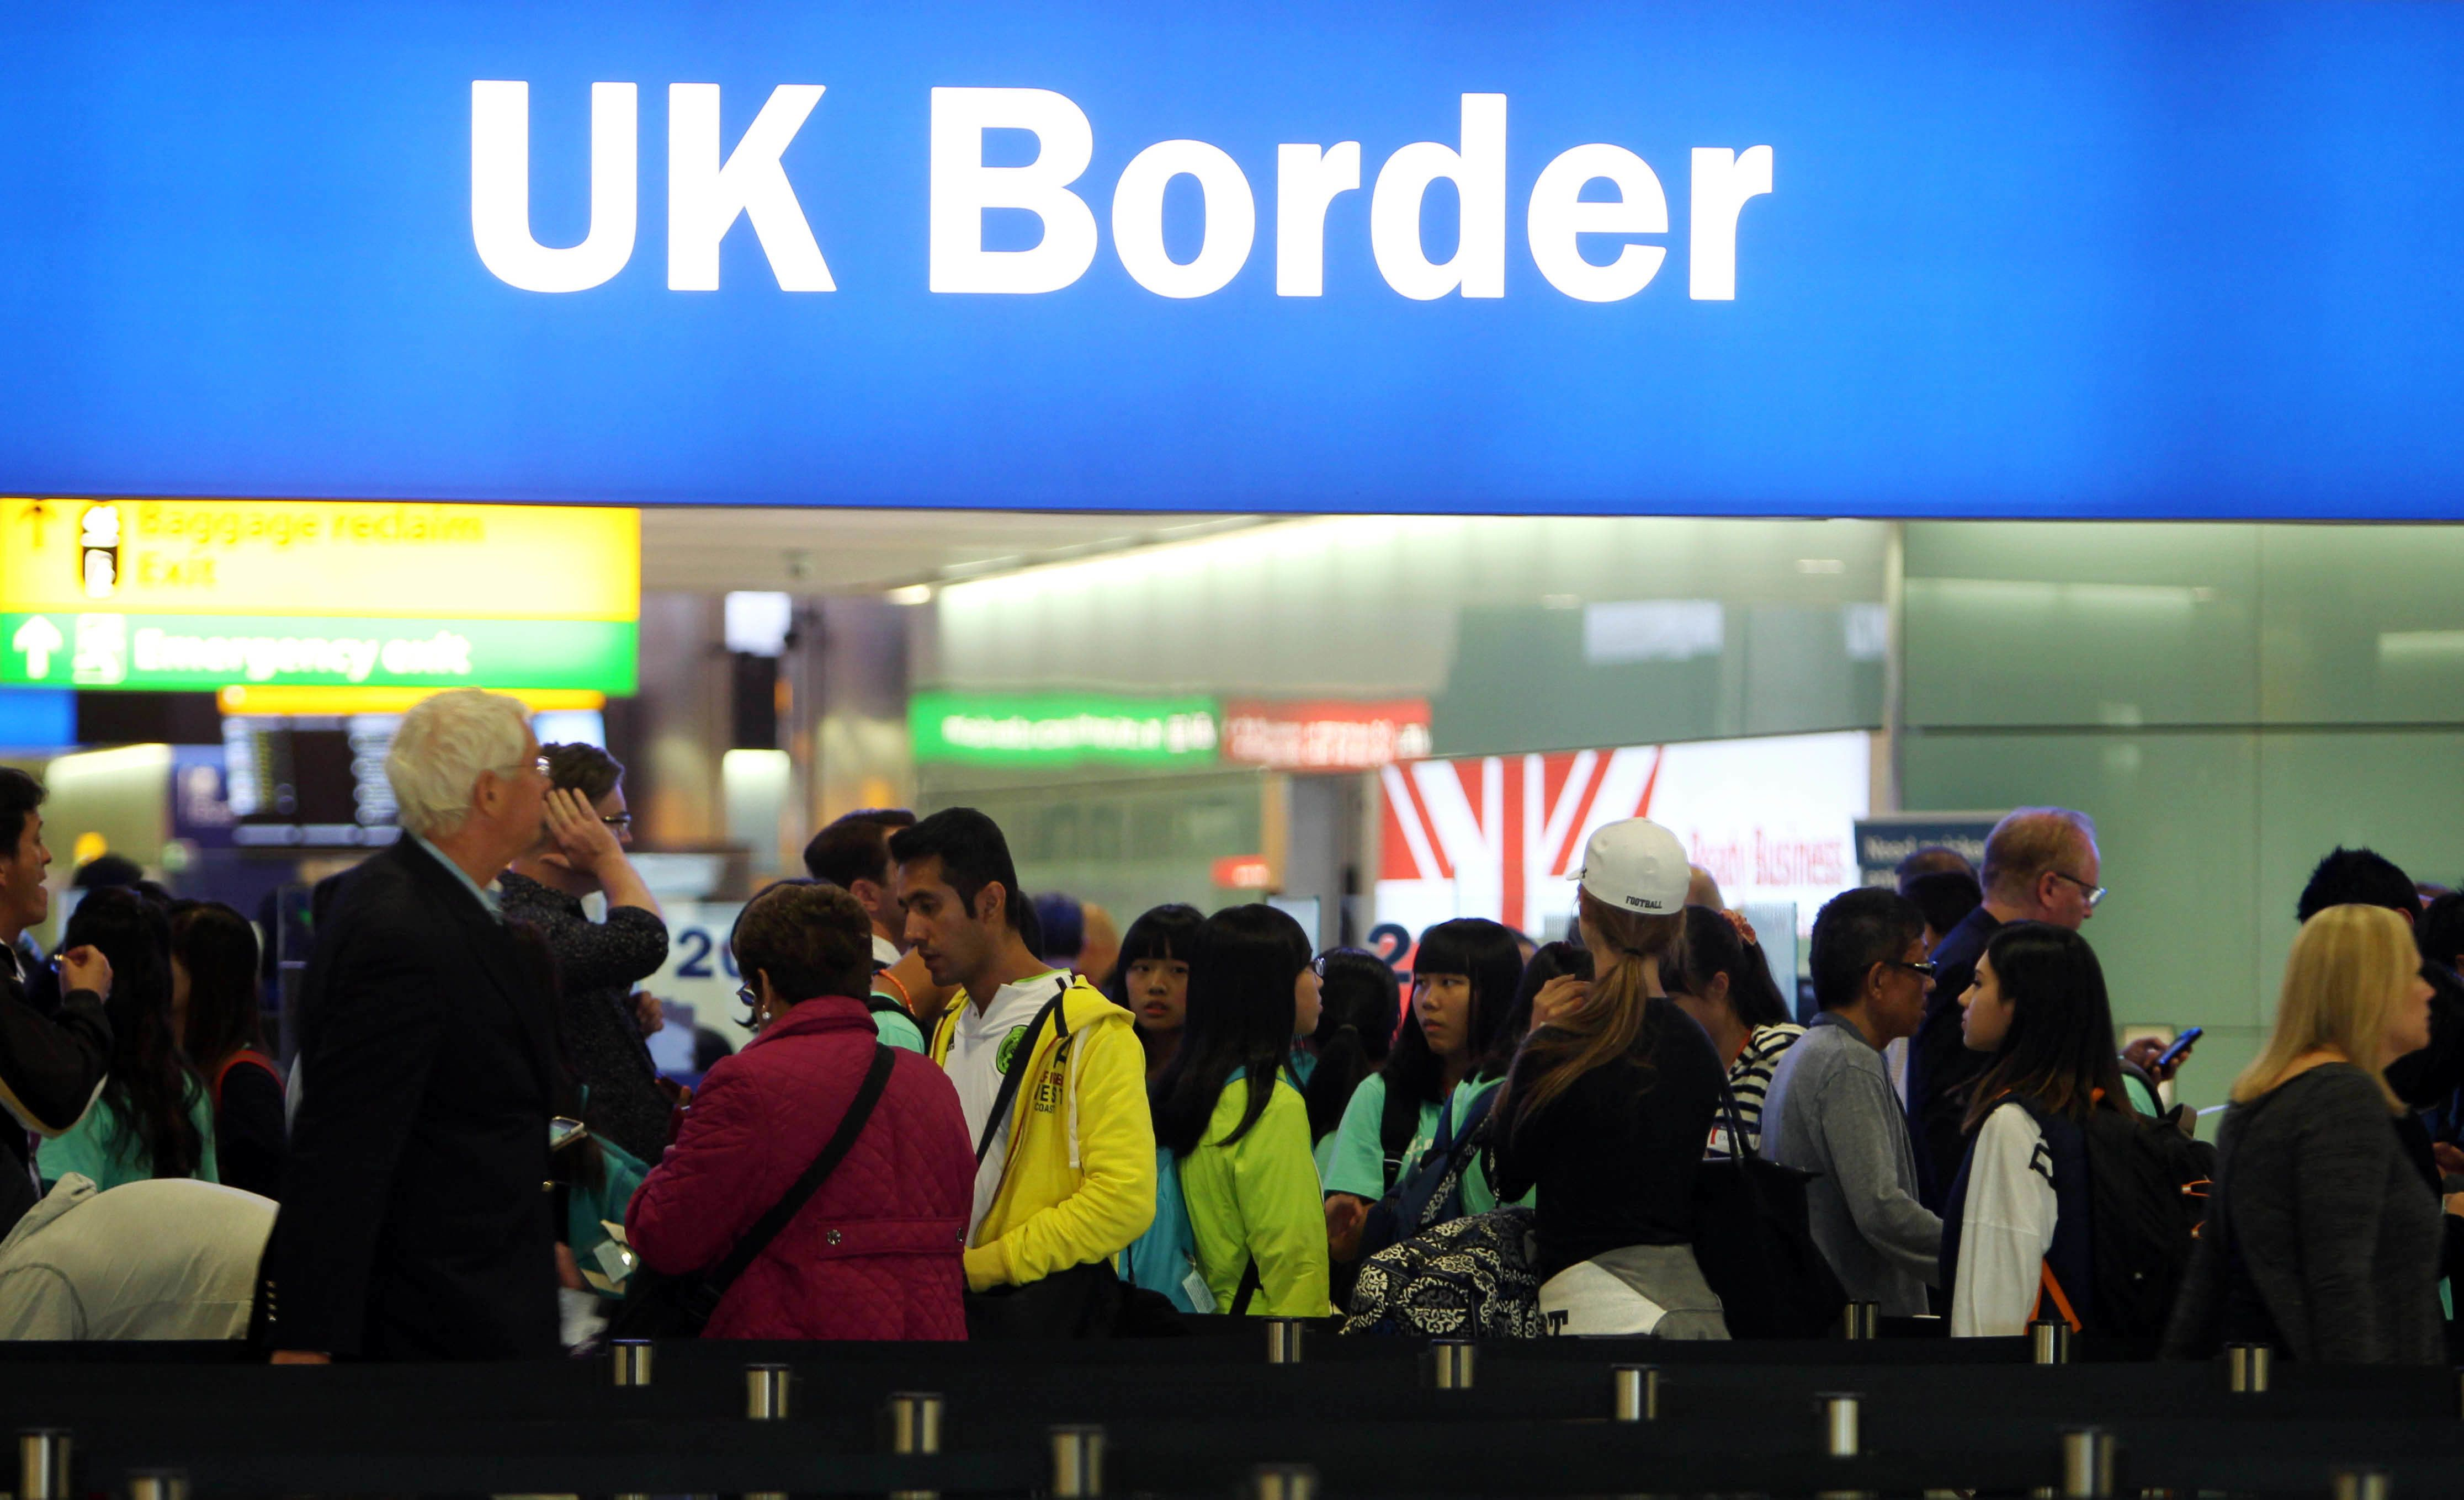 Net Migration Falls By More Than 100,000 After Brexit